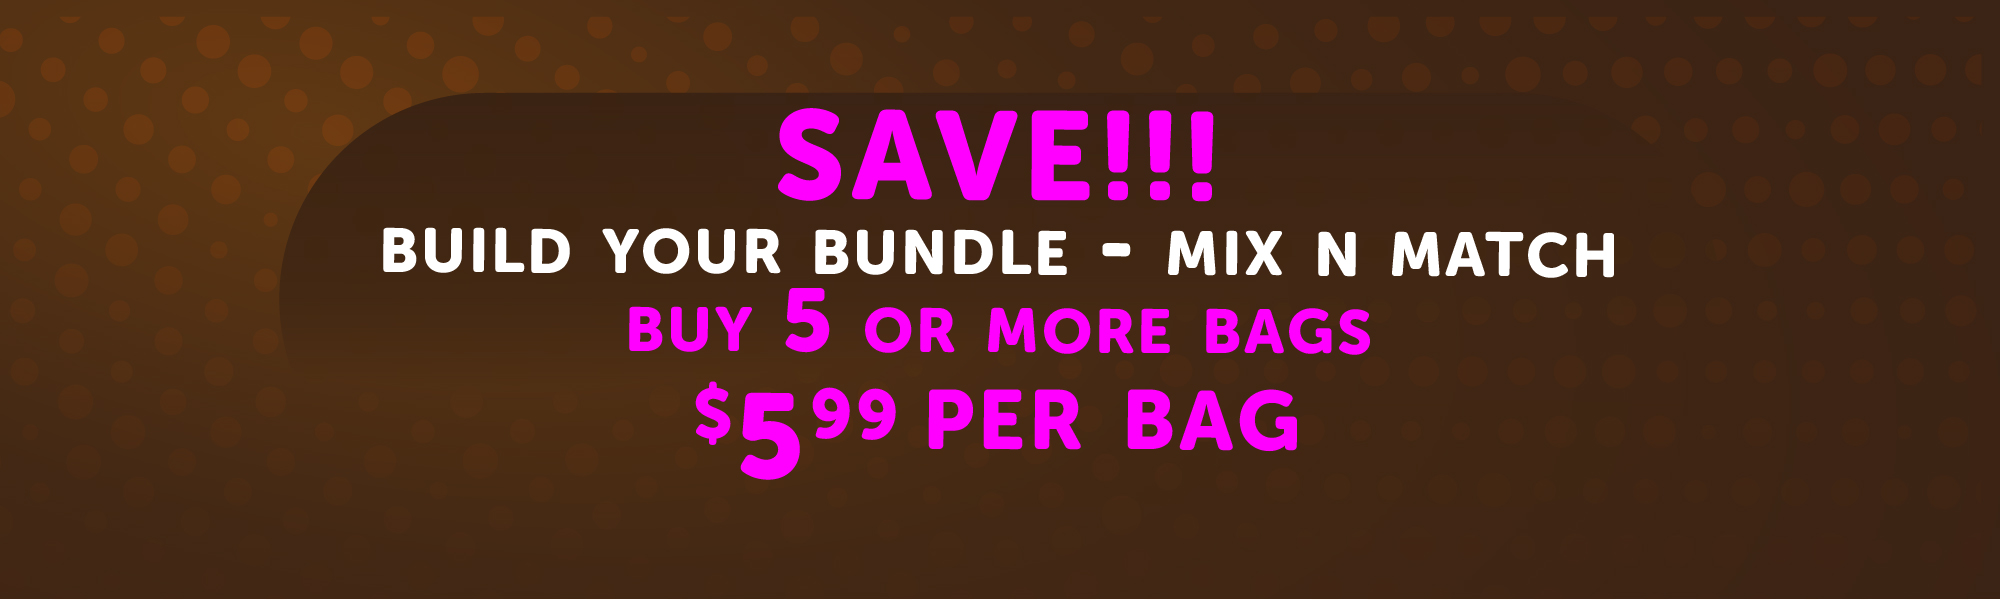 Build a Bundle to save up to 40% off ech bag cost.